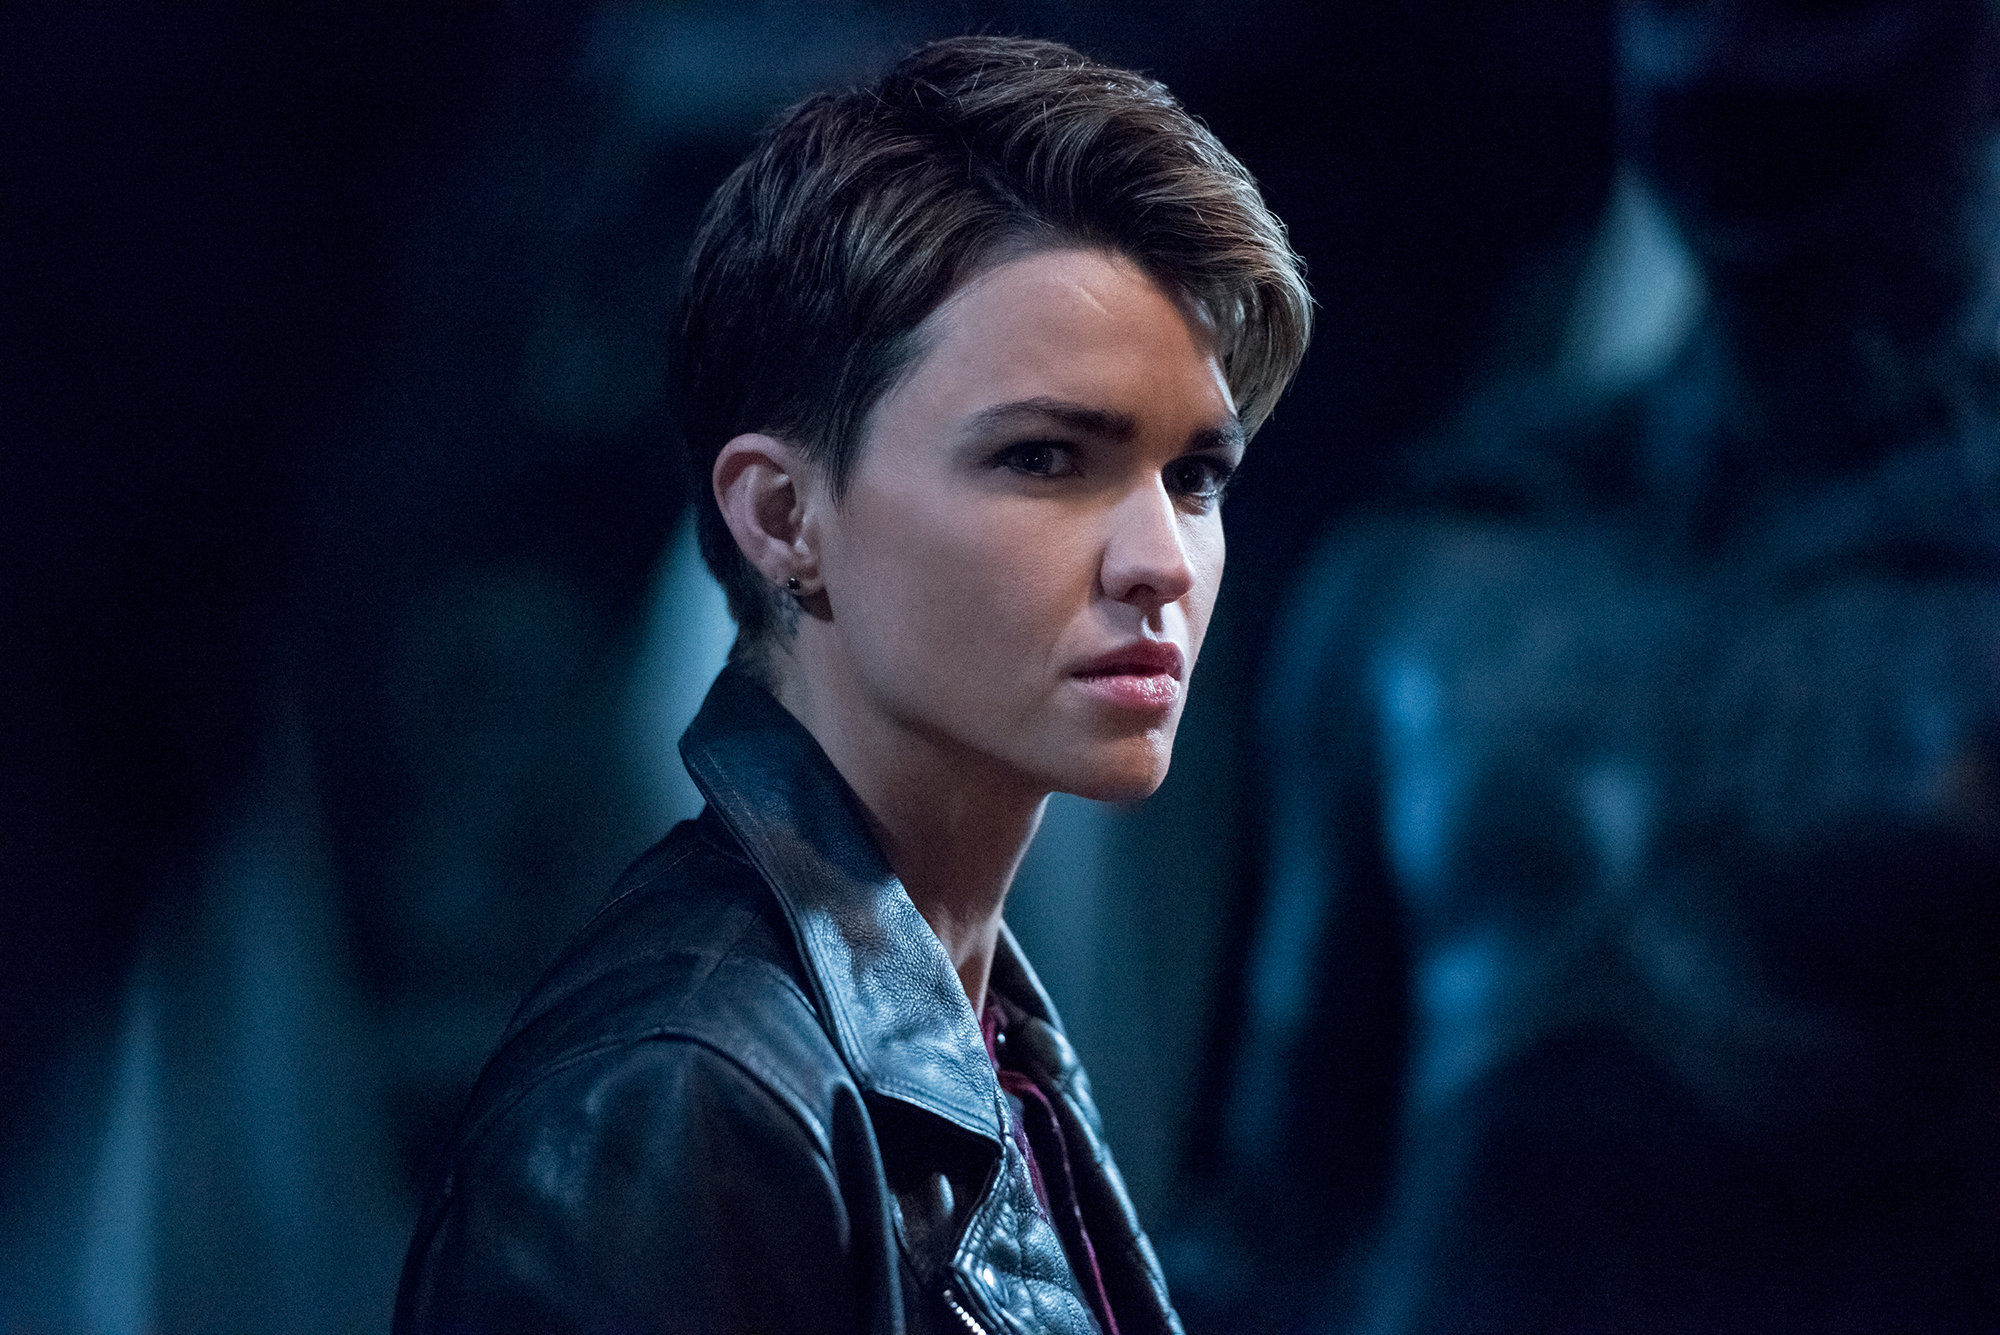 Ruby Rose Makes Difficult Decision Exit Catwoman After 1 Season